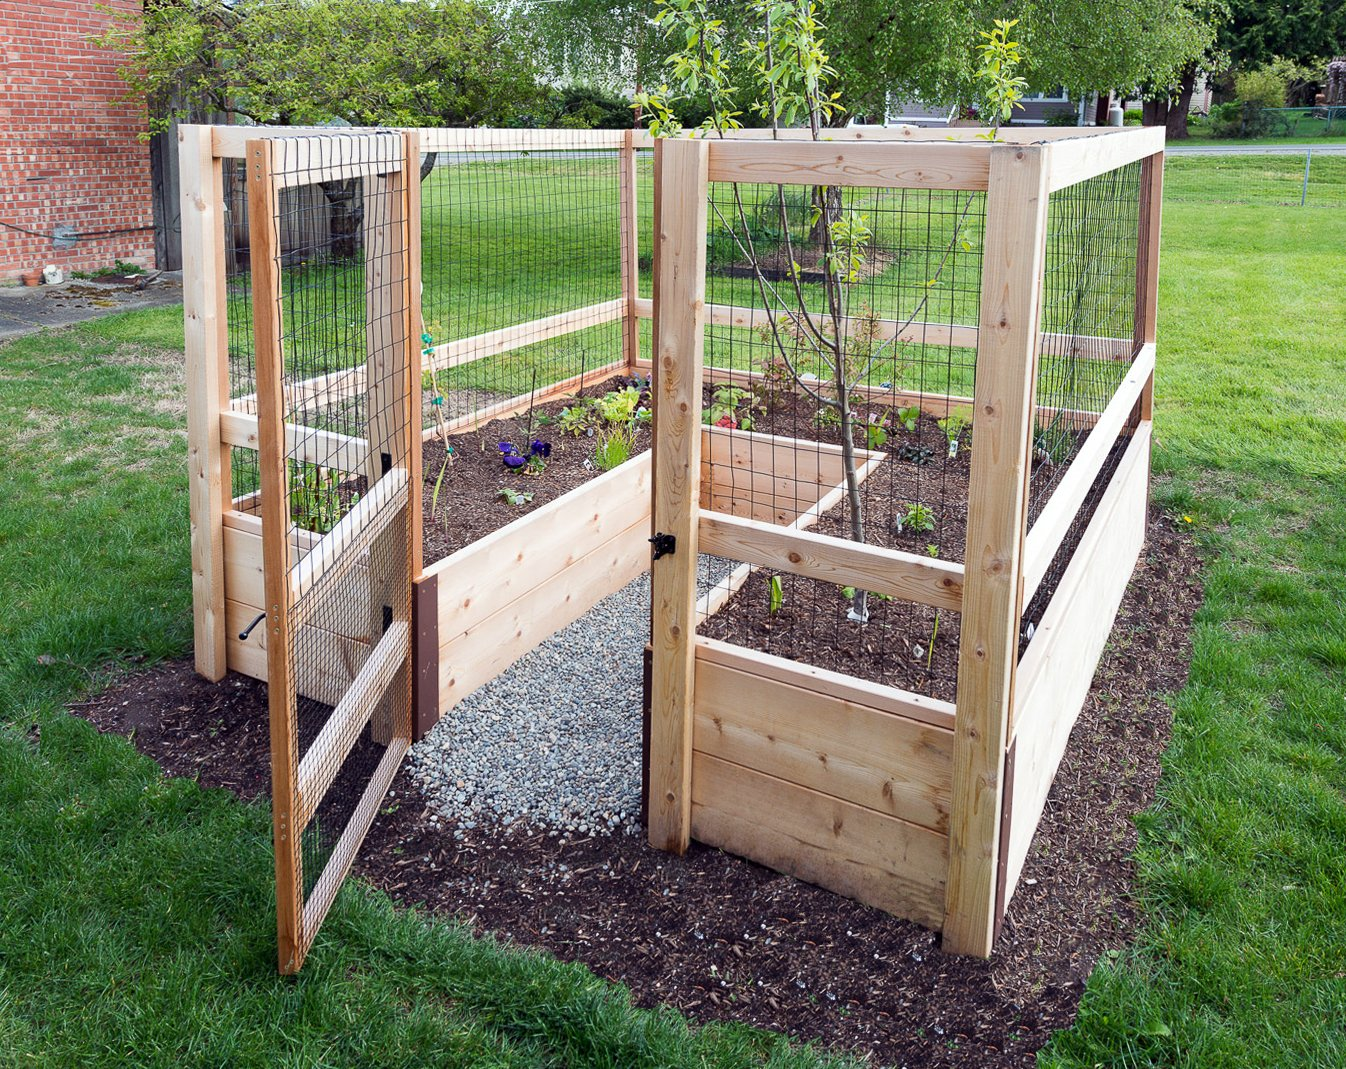 """Deer-Proof Just Add Lumber Vegetable Garden Kit - 8'x8' 2 DOES NOT INCLUDE LUMBER. Kit includes everything but the lumber: 8 Raised bed brackets, black nylon netting for fencing/trellis, black vinyl-coated steel wire for gate, ceramic-coated rust resistant screws, plus all other required hardware and detailed instructions Buy your own rough lumber locally - Build the ultimate vegetable garden with this kit. Required rough construction lumber : (10) 2""""x10""""x8'; (1) 2""""x10""""x6'; (6) 2""""x4""""x12'; (2) 2""""x4""""x8'; (3) 2""""x2""""x12'; (1) 2""""x2""""x8'; (4)1-5/8""""x1-5/8""""x12' (actual size). Note: the lumber boards will need to be further cut into the sizes described in the assembly instructions Gated garden keeps out deer, rabbits and dogs"""